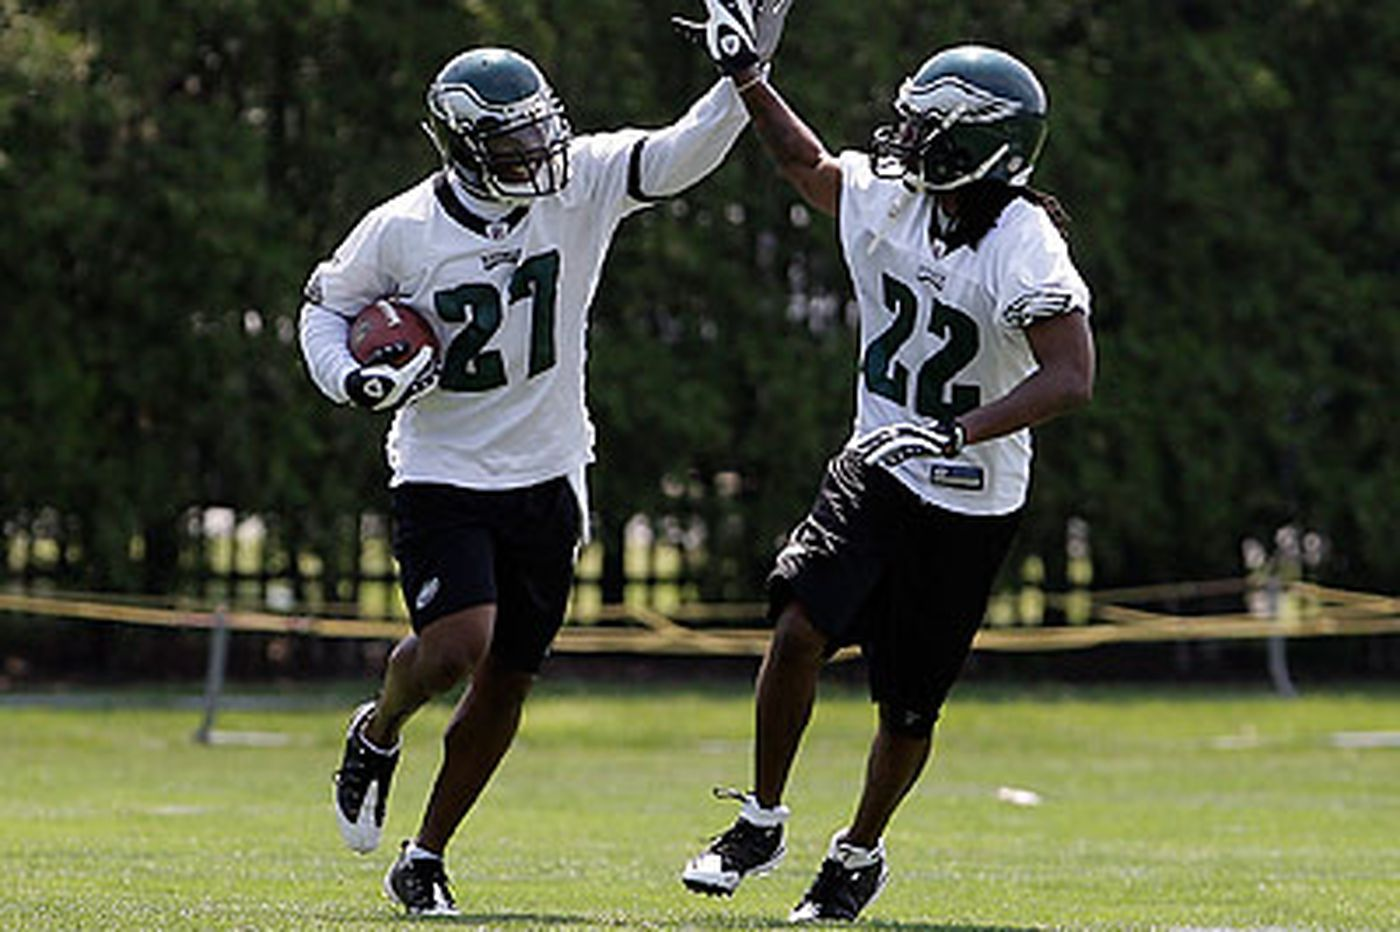 Eagles Notes: Samuel comes to town for voluntary minicamp